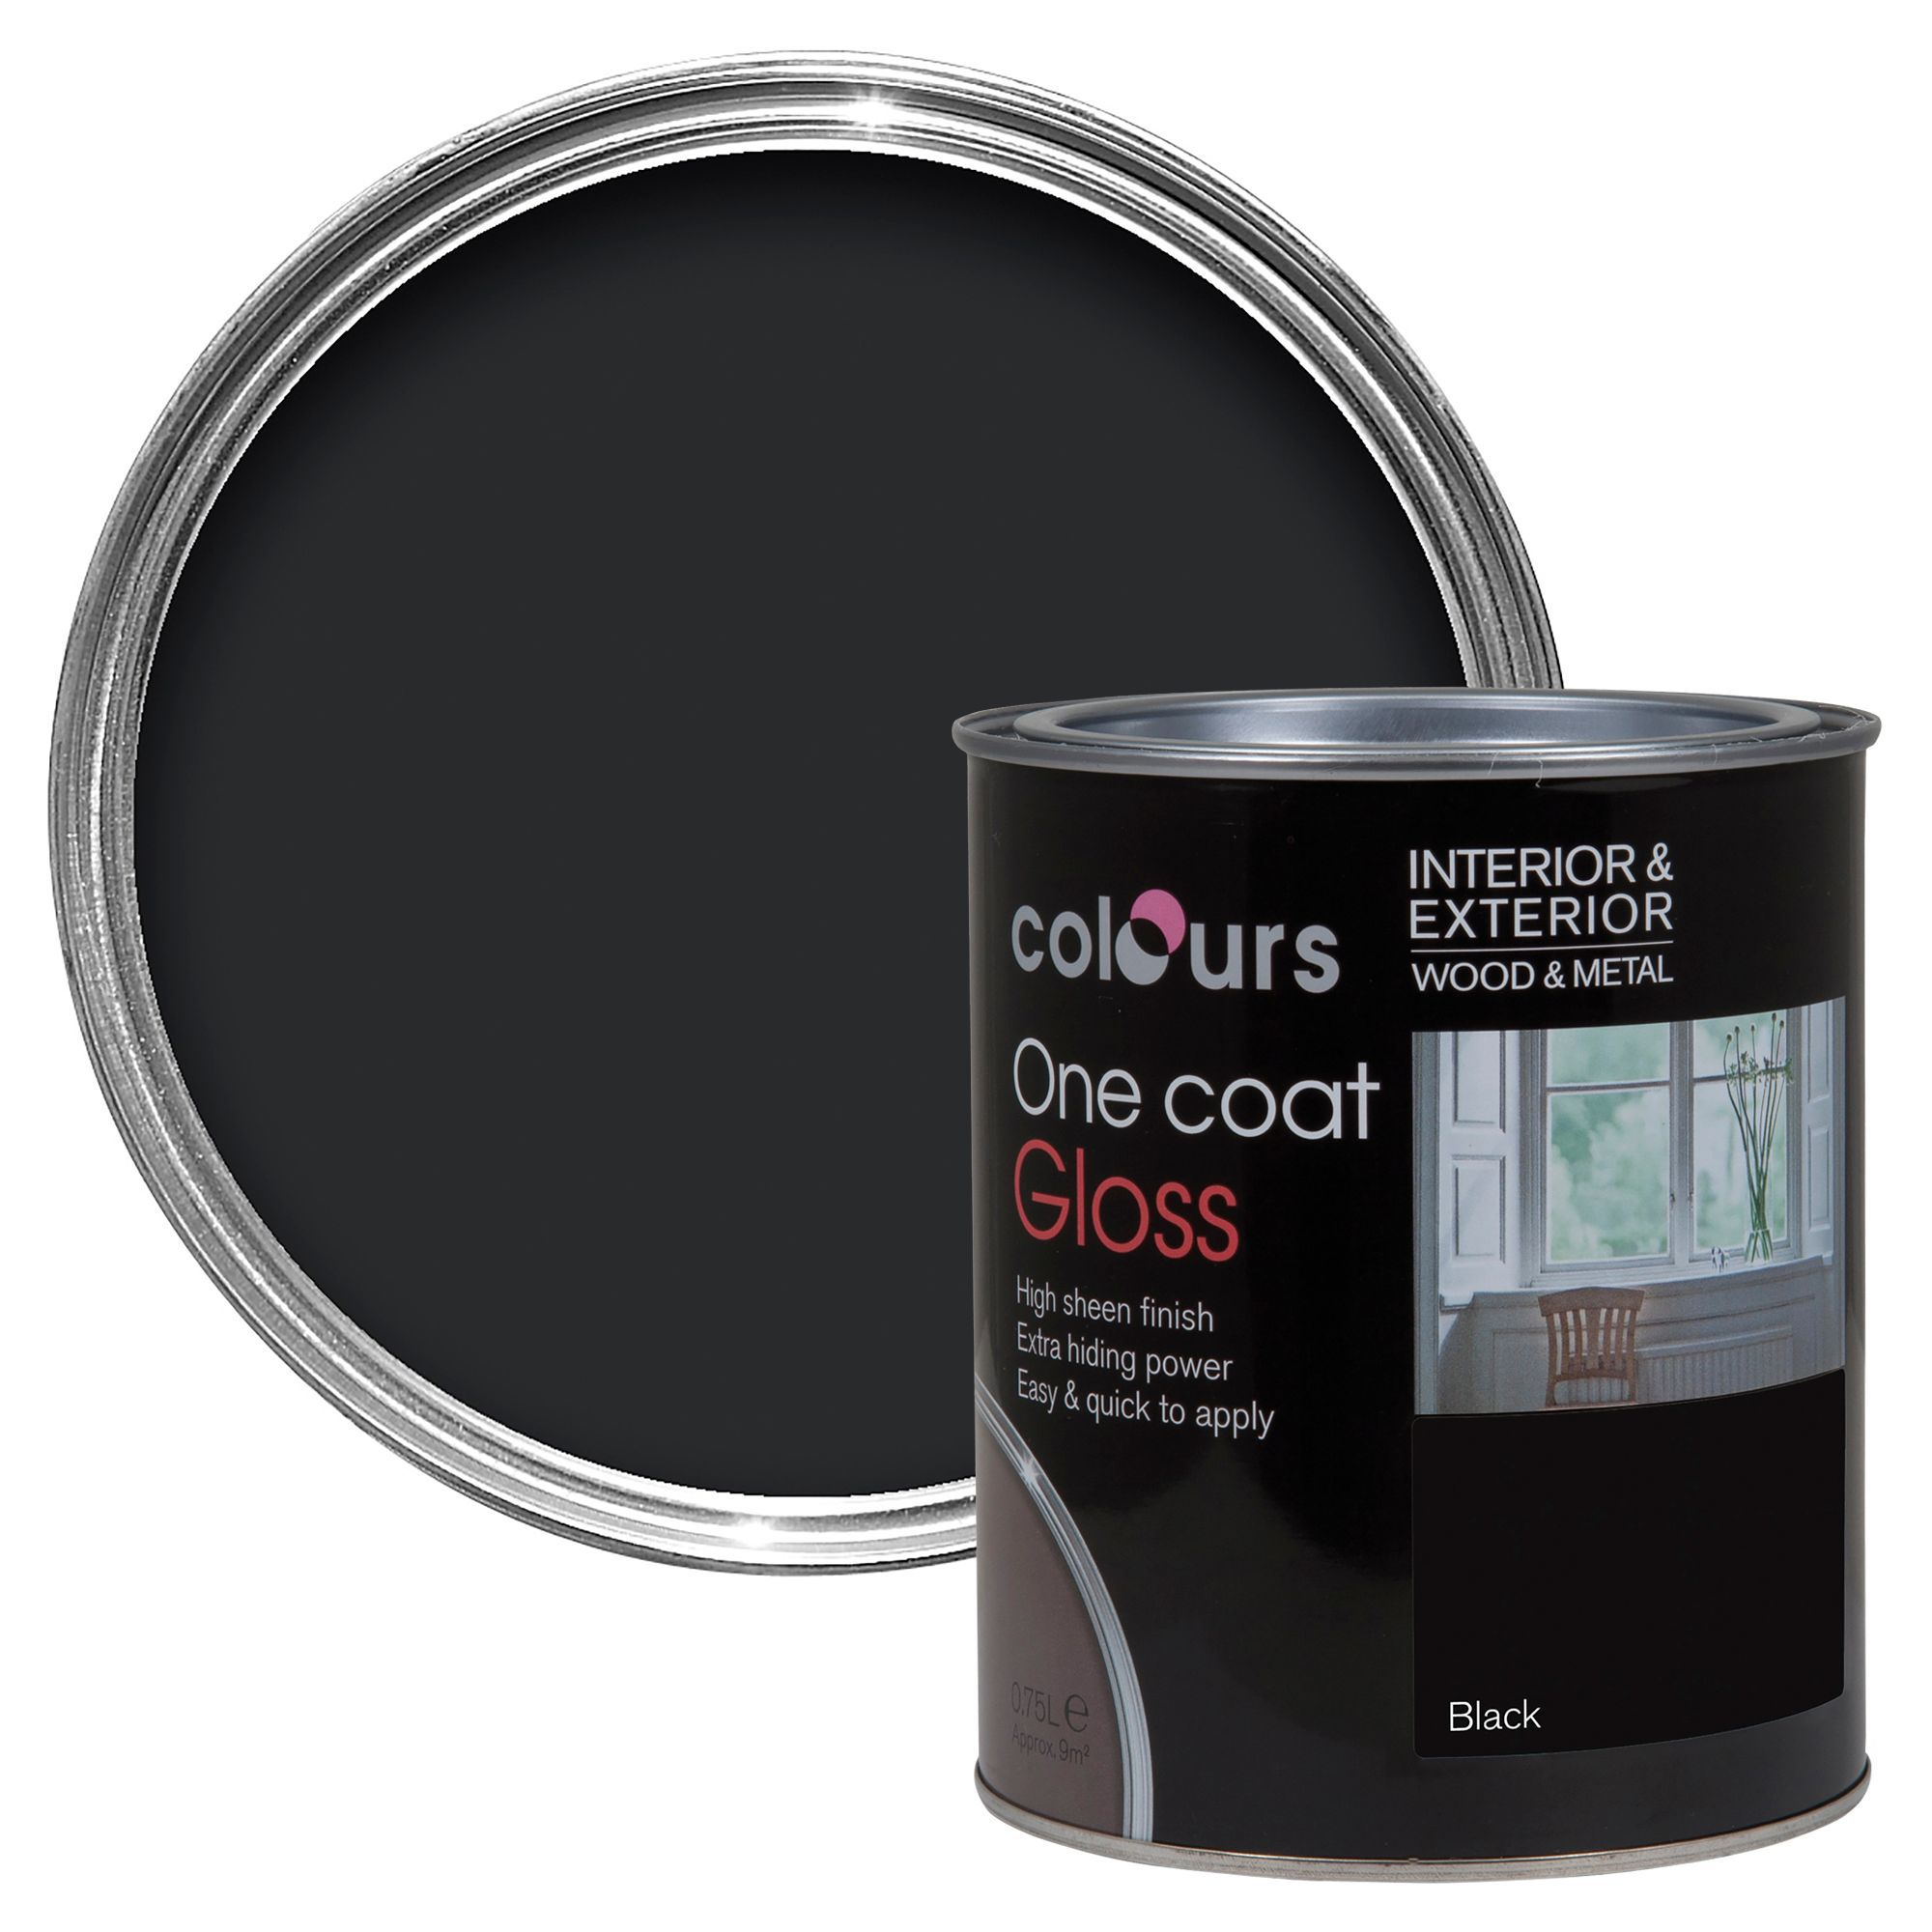 Colours One Coat Interior Exterior Black Gloss Wood Metal Paint Departments Tradepoint